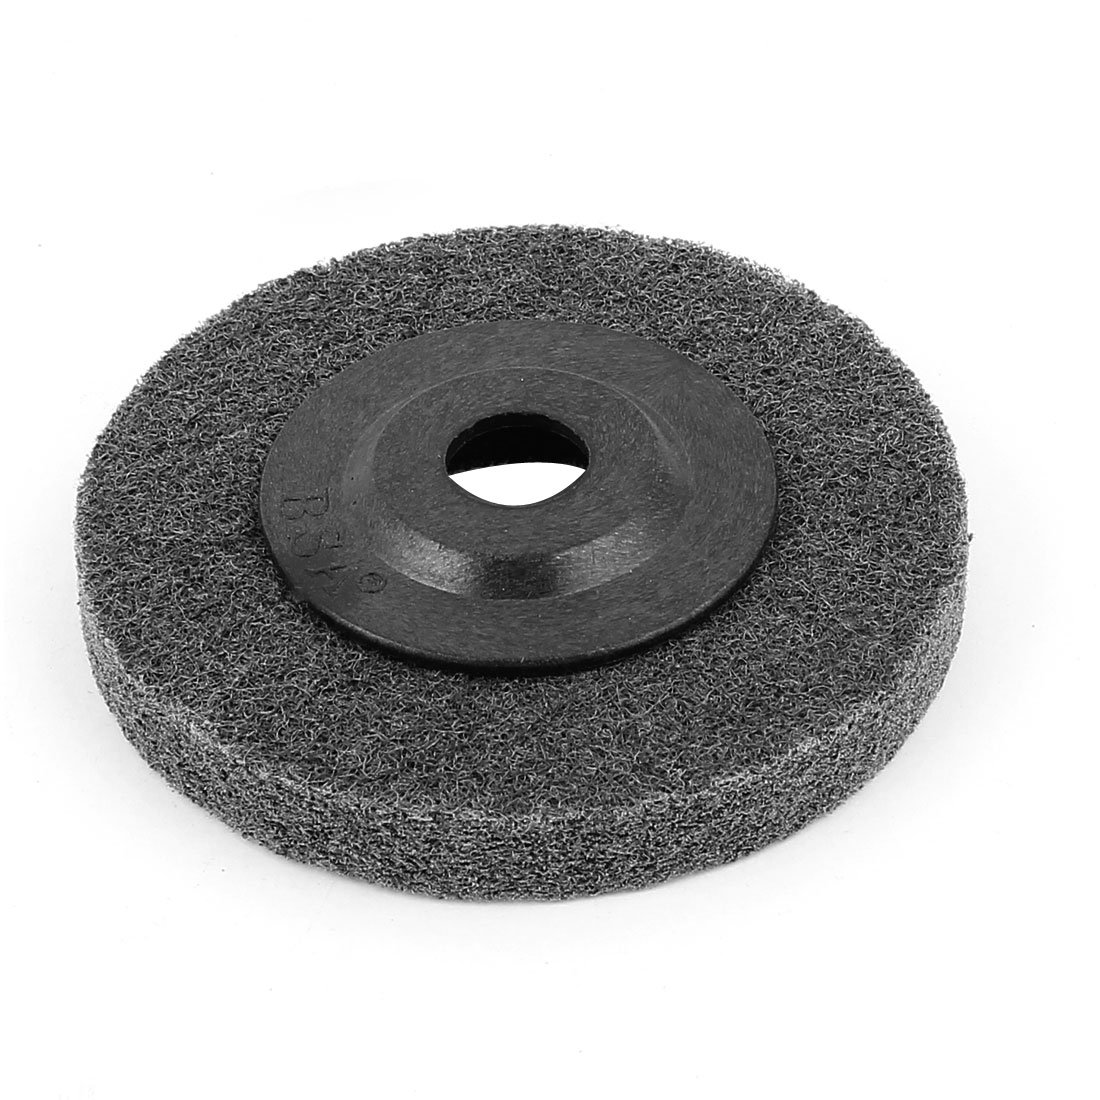 Sourcingmap® 100mm x 16mm x 13mm Cutting Grinding Disc Abrasive Grinding Wheel Gray a15121400ux0293